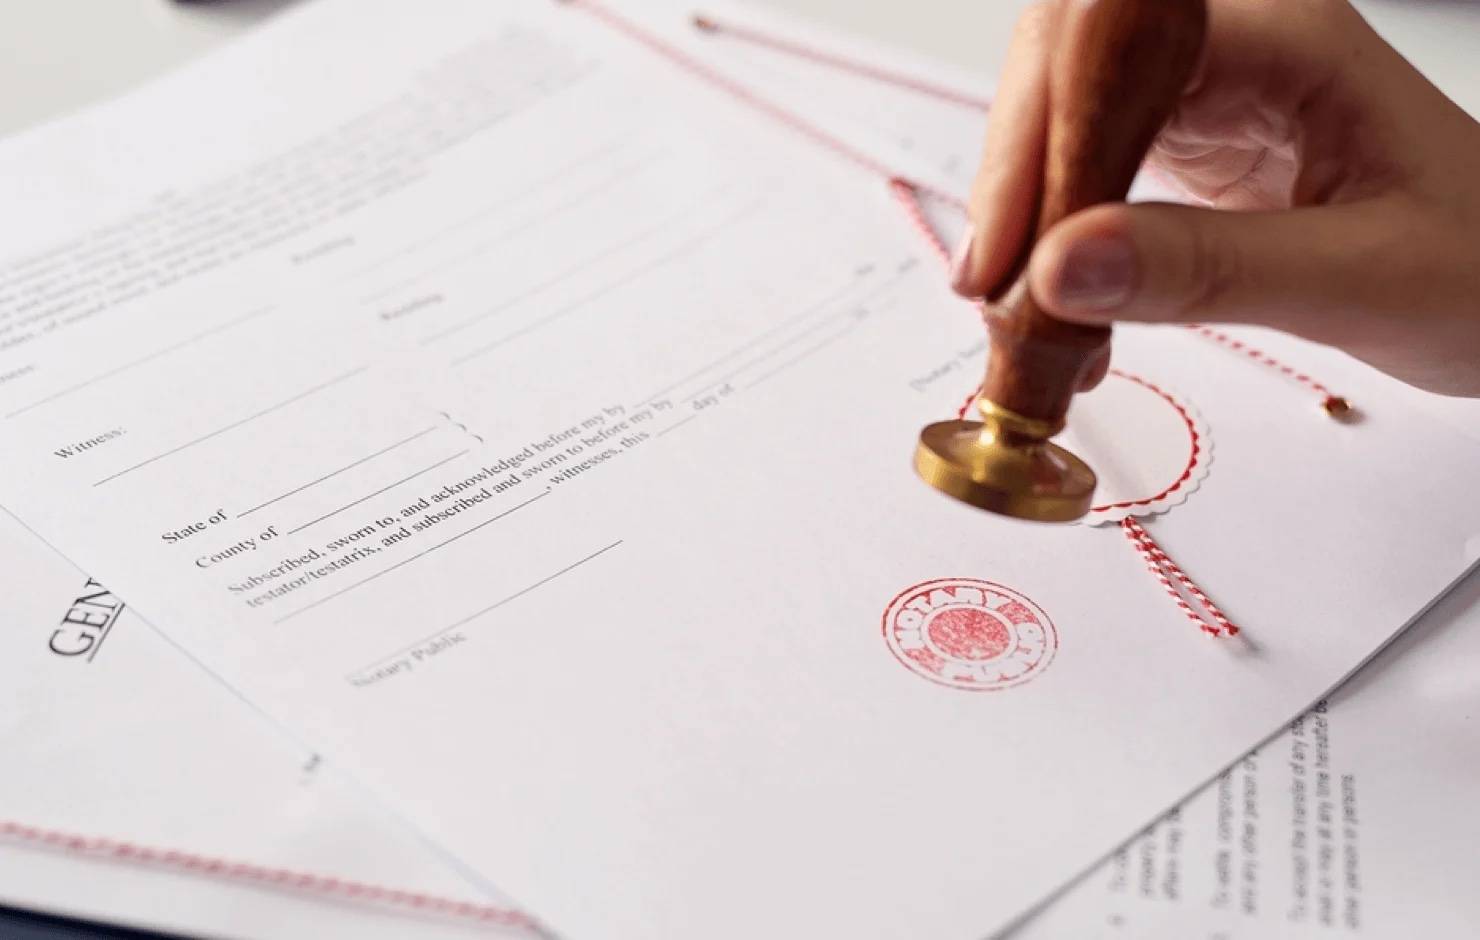 Other Business License And Miscellaneous Bonds